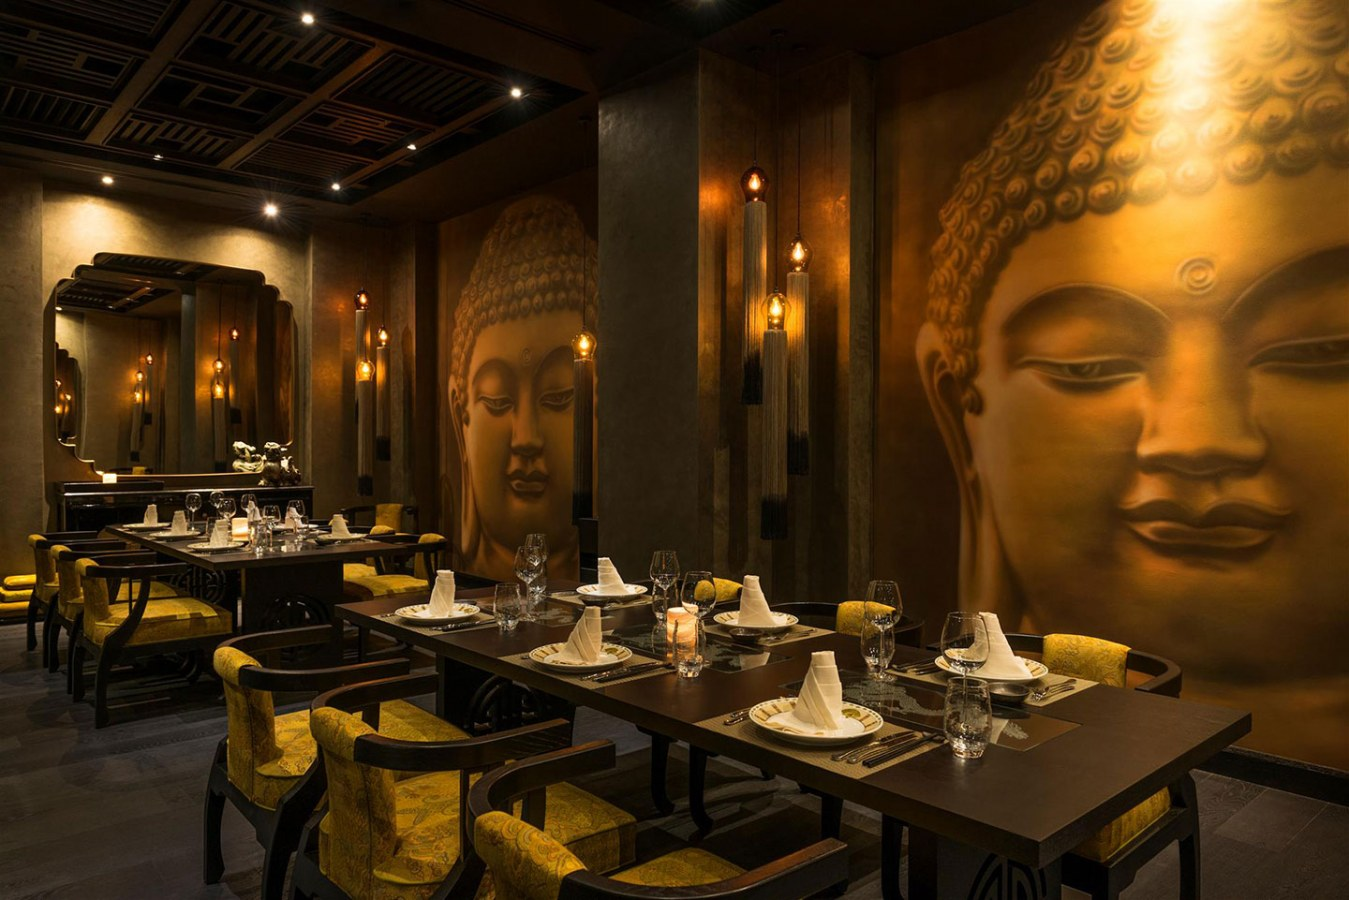 The perfectly set tables at Buddha Bar Dubai with Buddha motifs on the walls everywhere